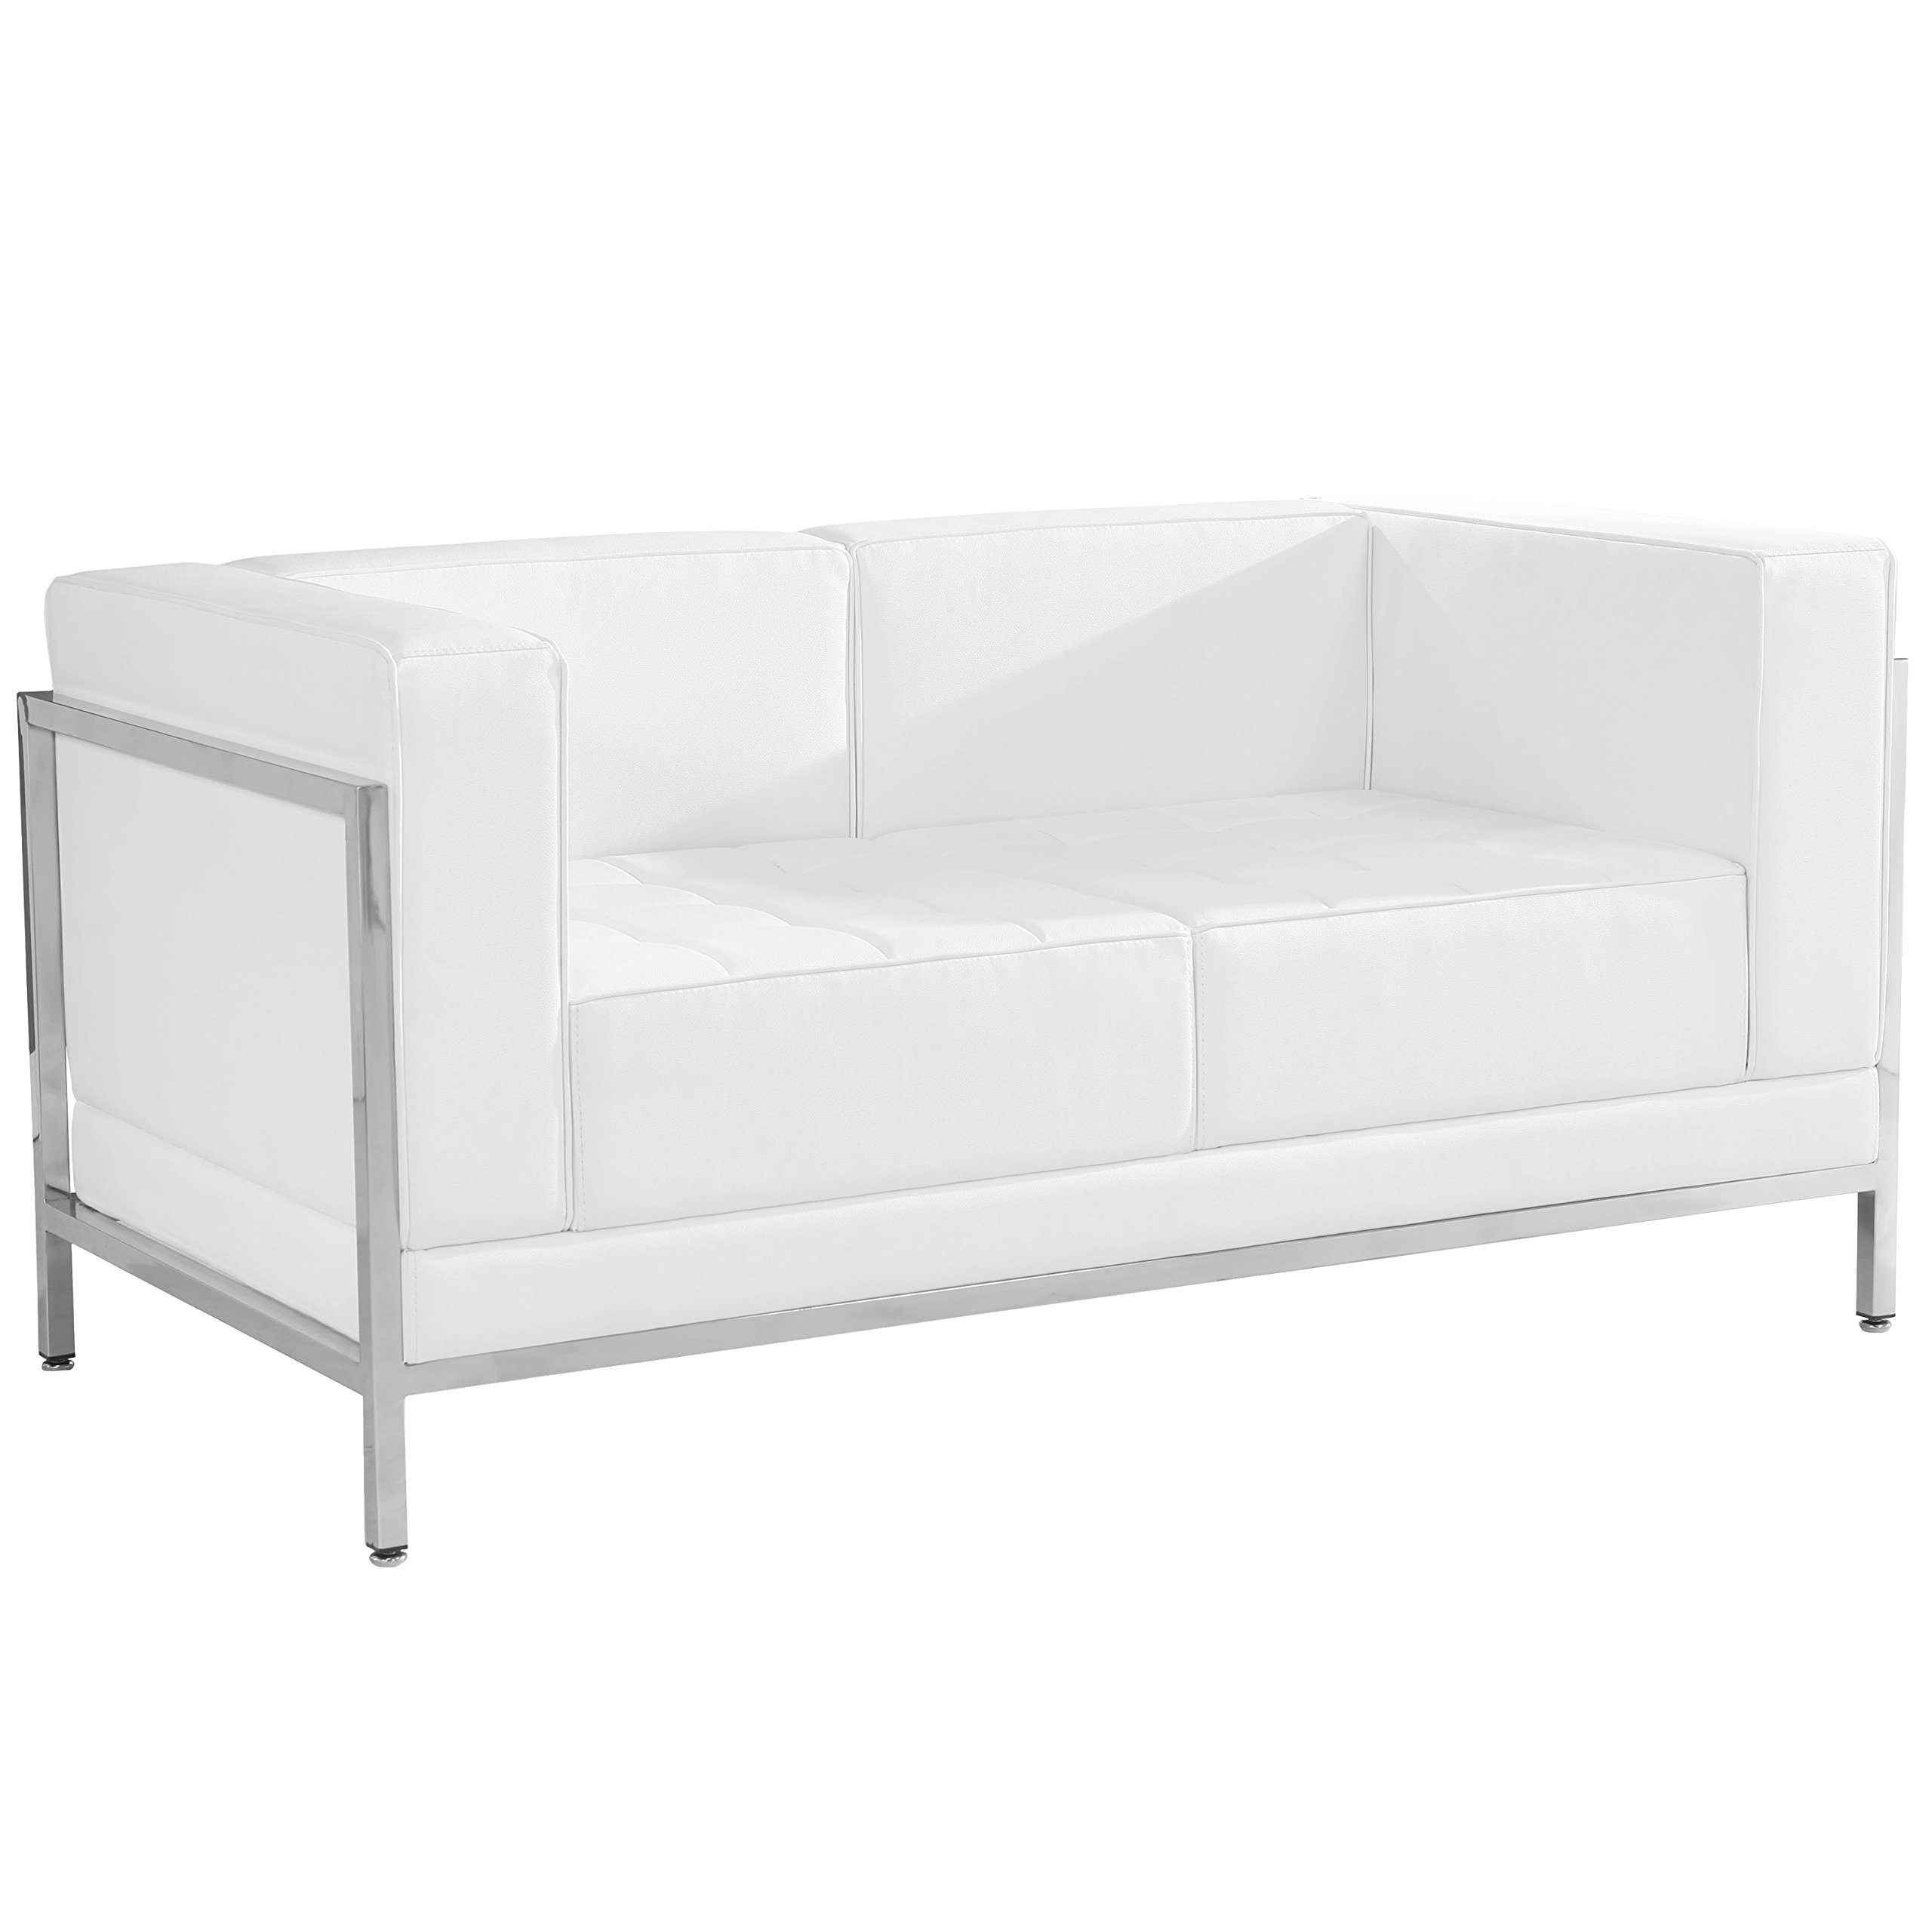 Flash Furniture HERCULES Imagination Series Contemporary Melrose White Leather Loveseat with Encasing Frame by Flash Furniture (Image #1)